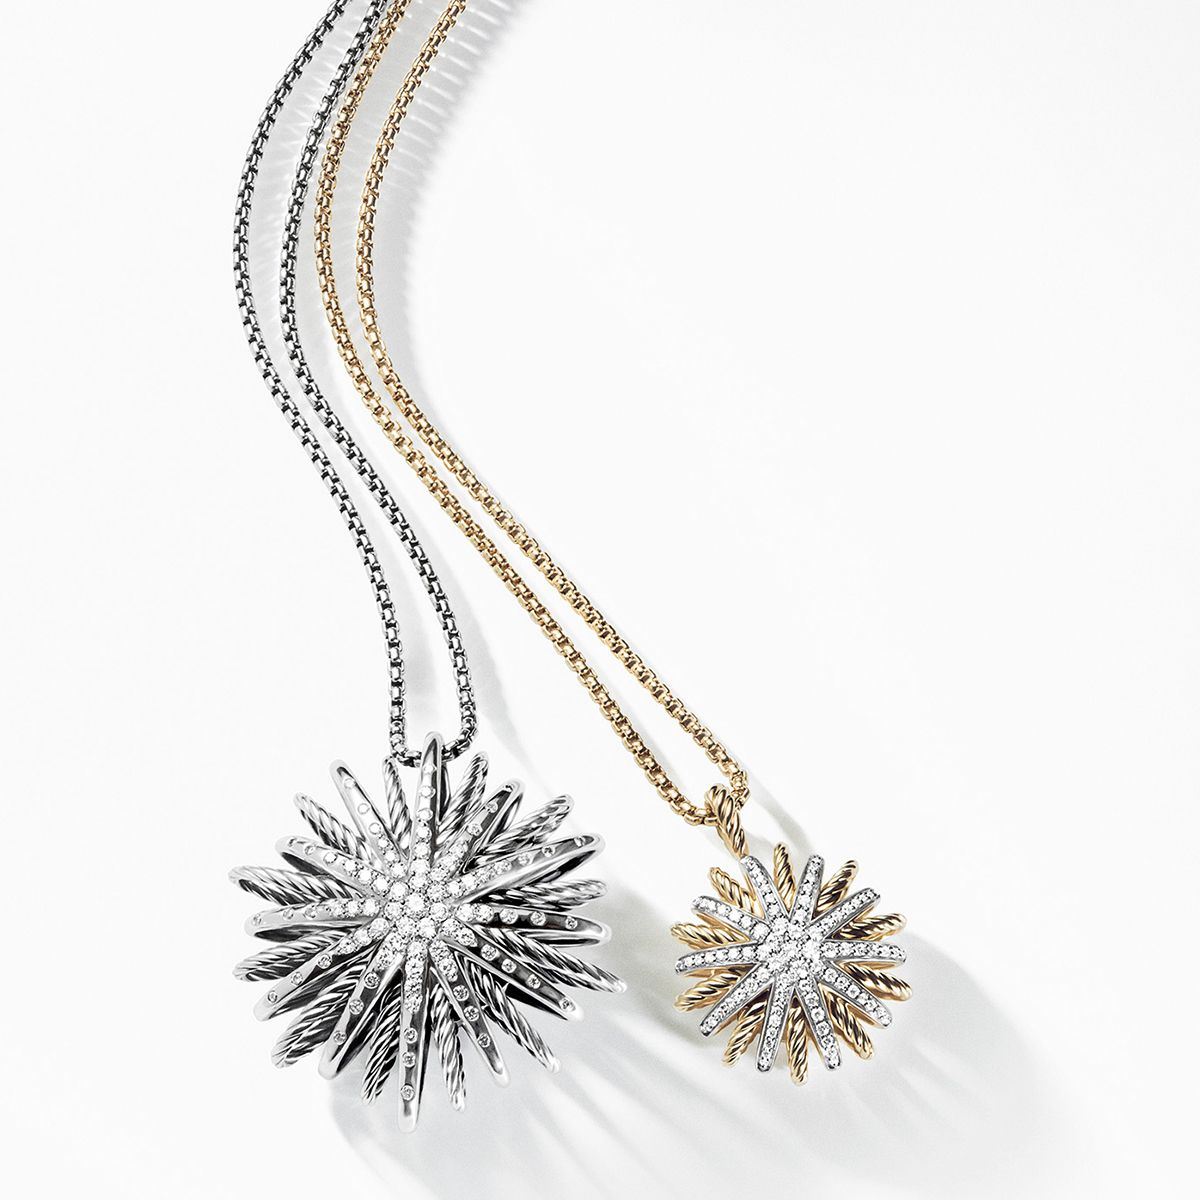 Starburst pendants with diamonds the spring gift guide starburst pendants with diamonds mozeypictures Images